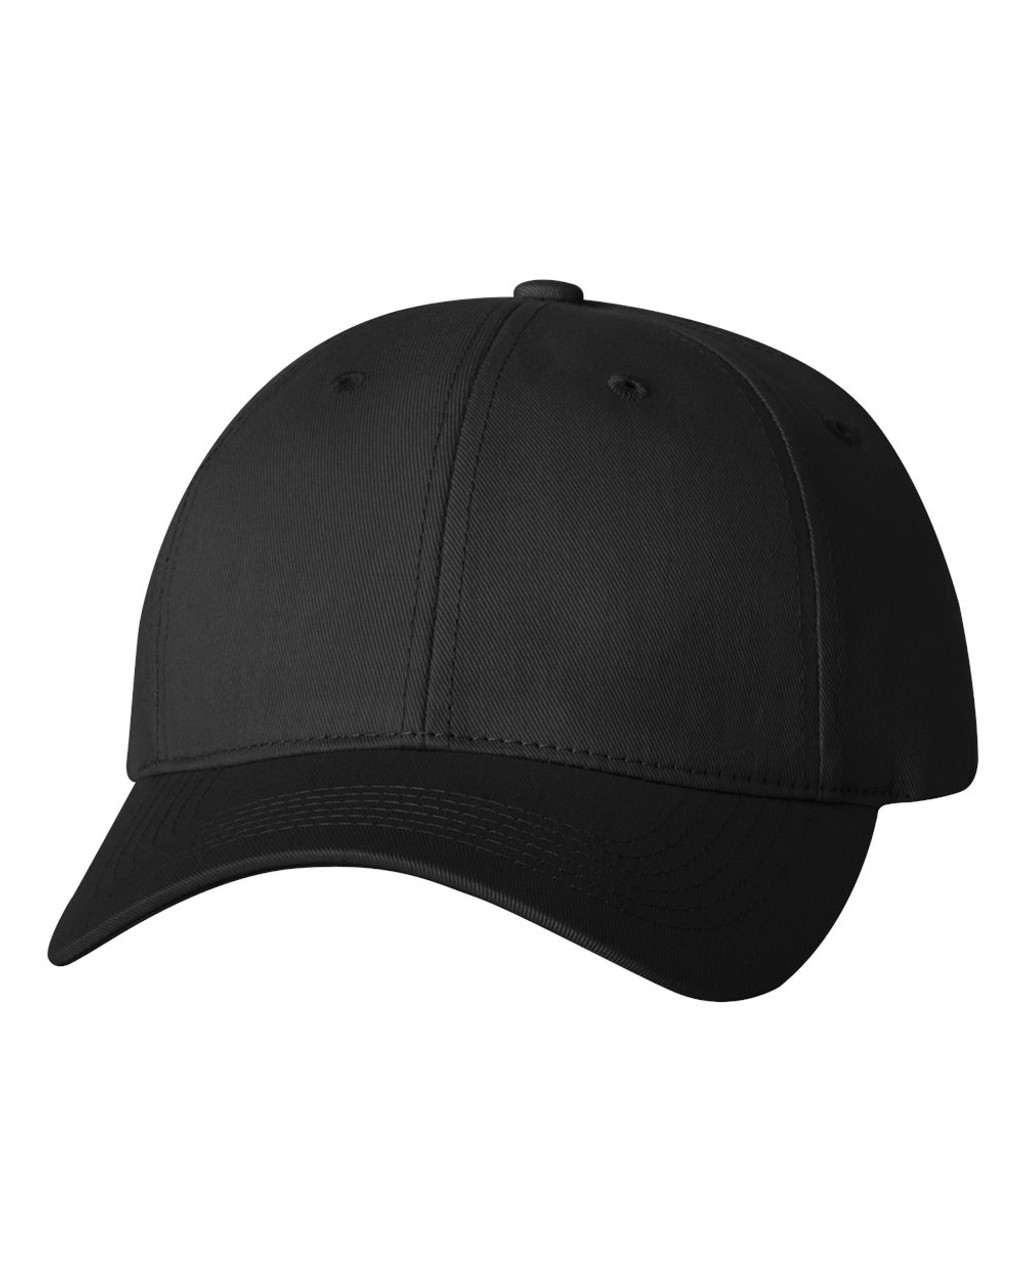 2260 - Twill cap with Velcro Closure by Sportsman in Black